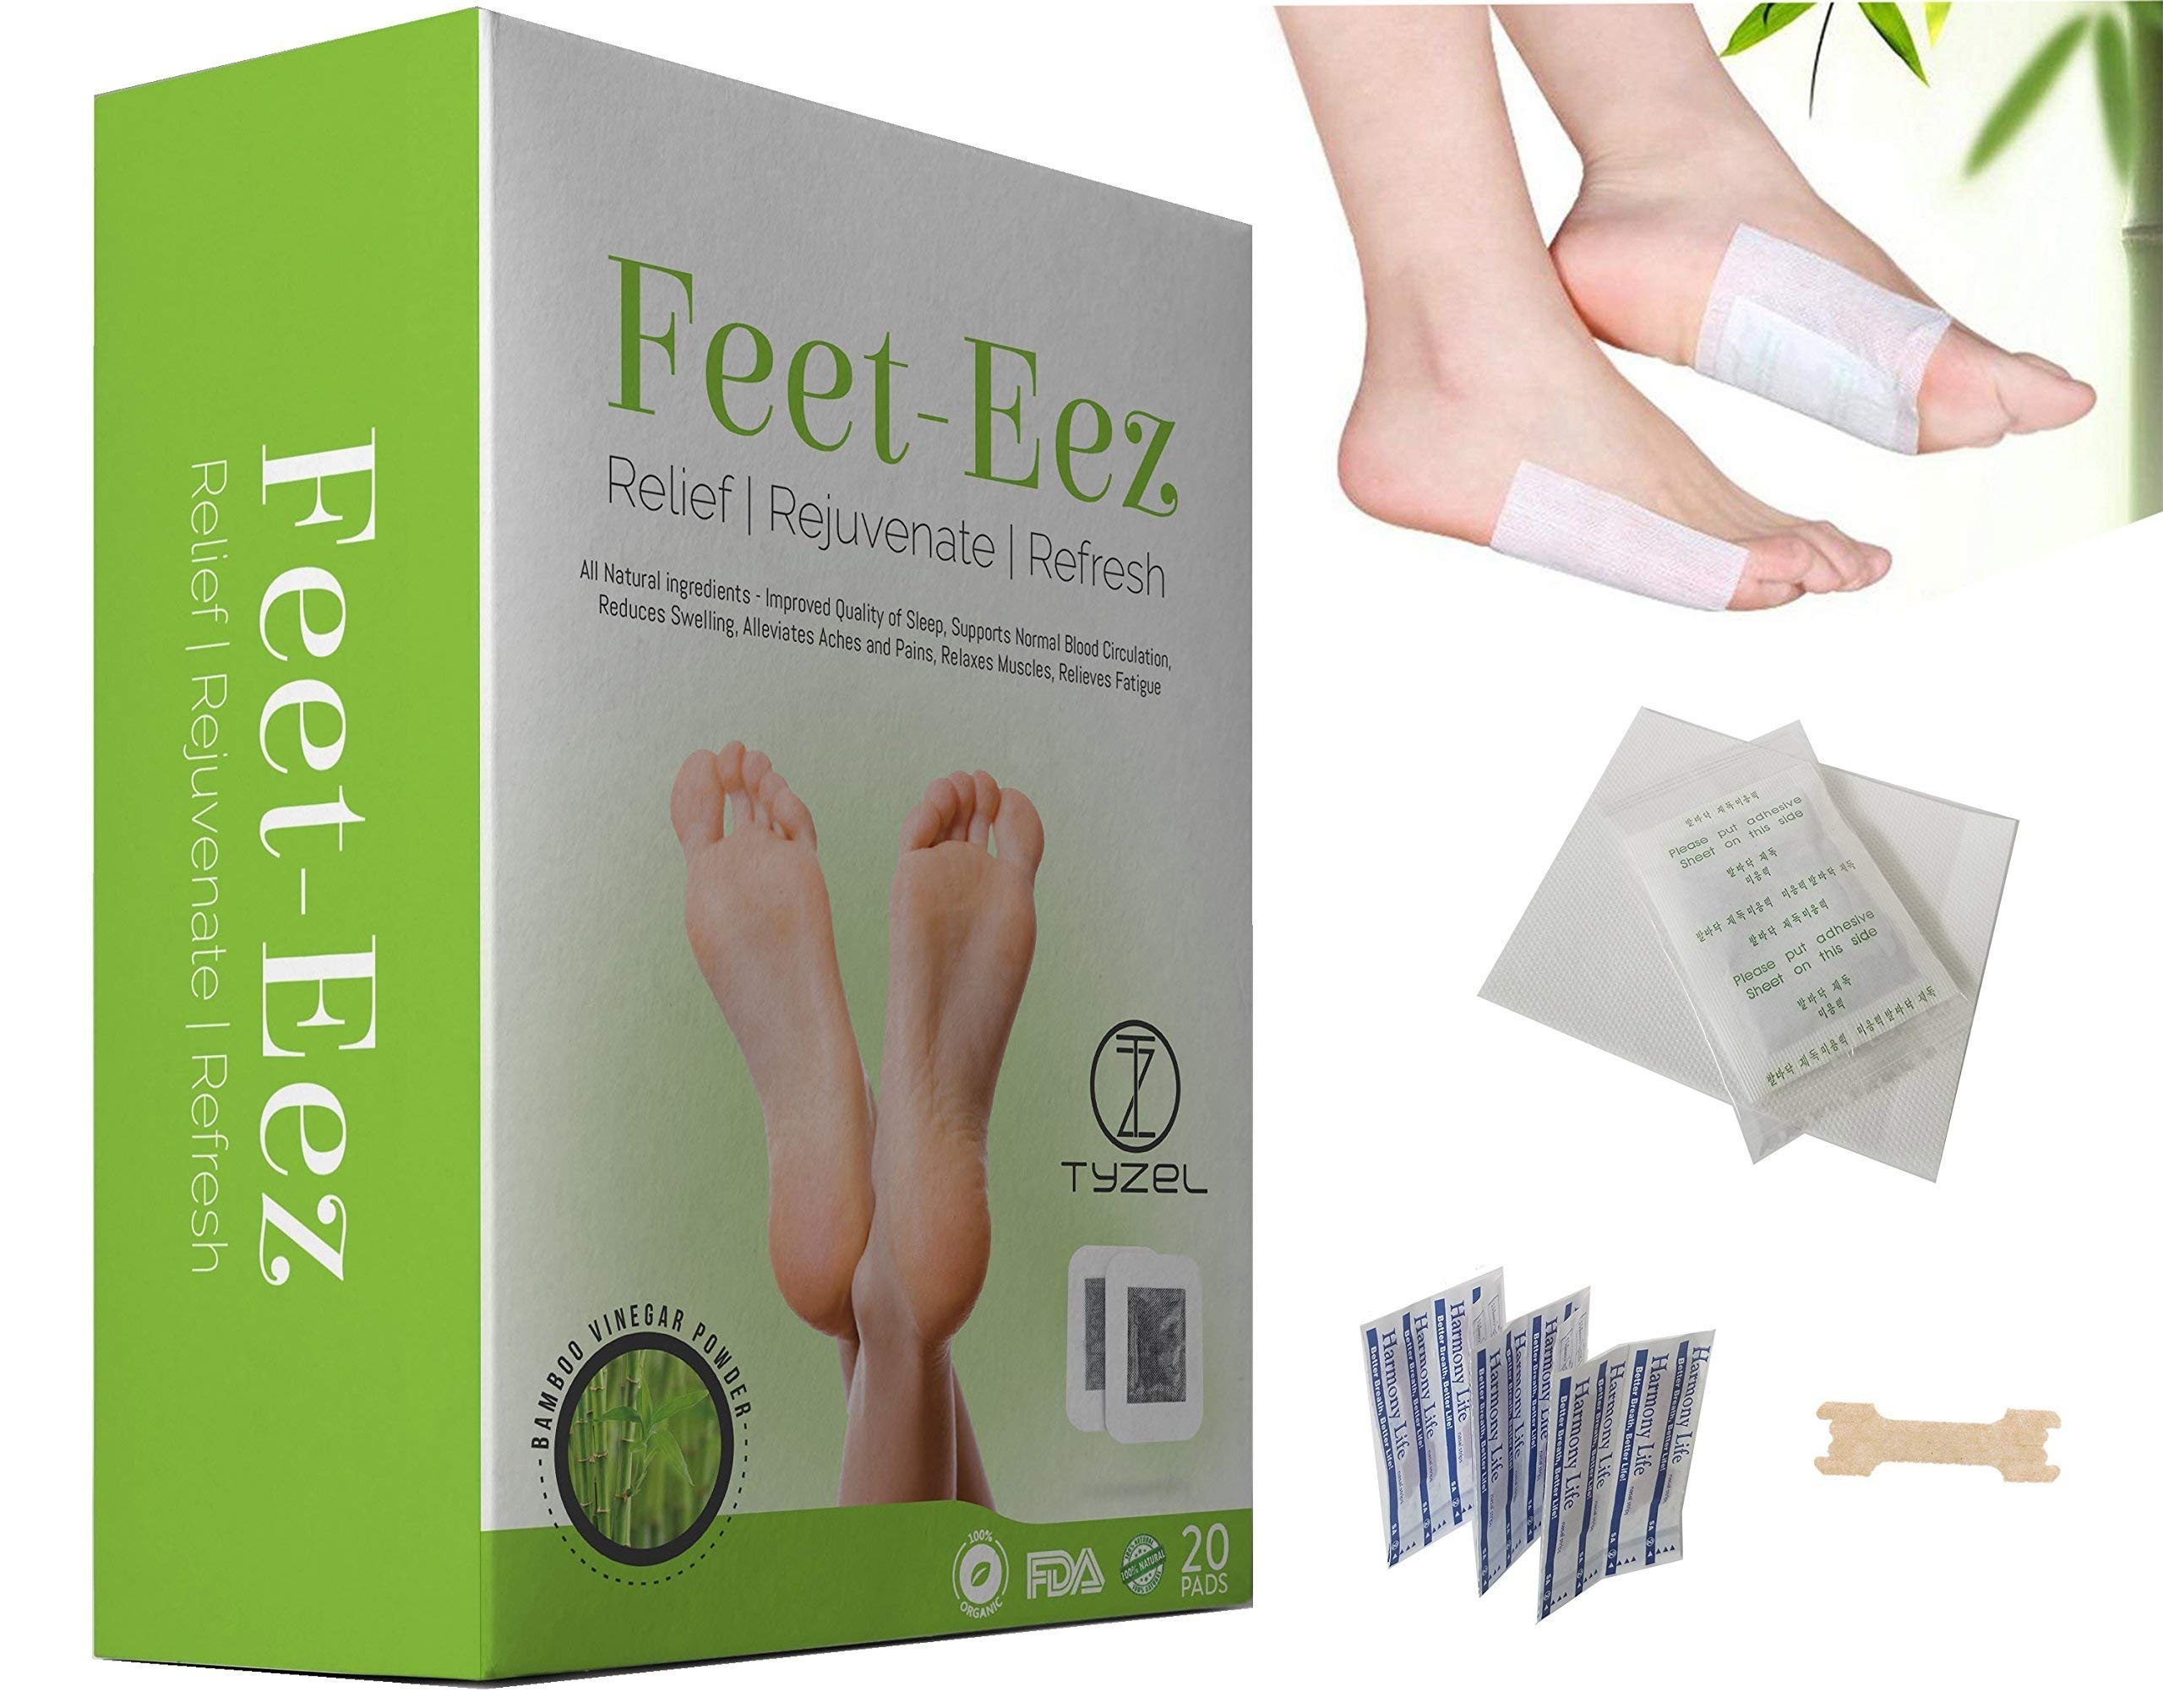 Foot Pads - 20 Pack with Bonus 10 Nasal Strips All Natural Pain Relieving Bamboo Vinegar Patches for Reducing Stress, Removing Impurities, Revitalizing and Renewing The Body